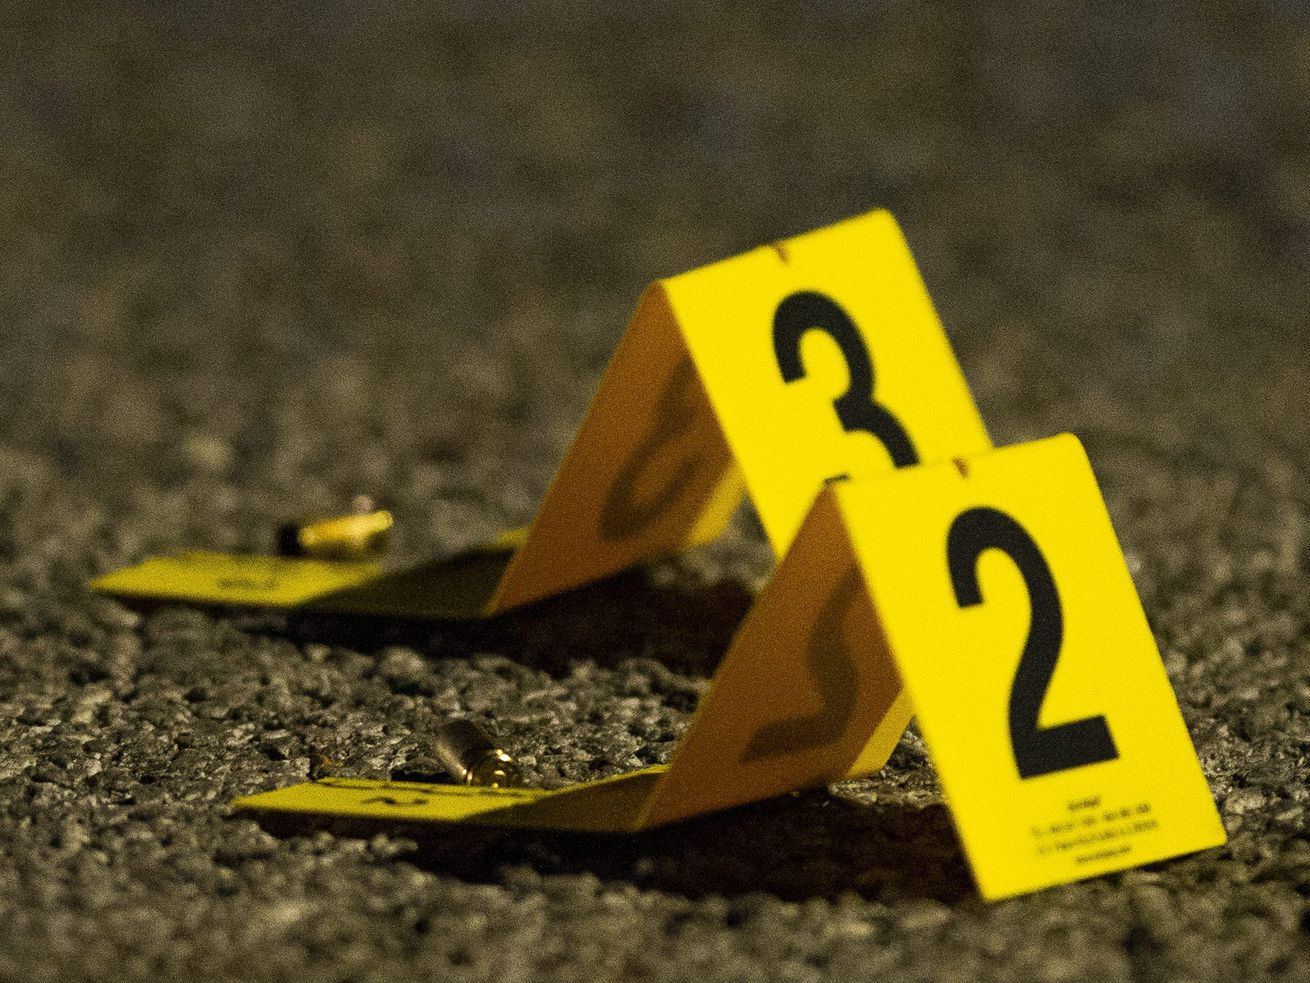 A woman was wounded and a man died after shots was fired in a drive-by in Gresham.